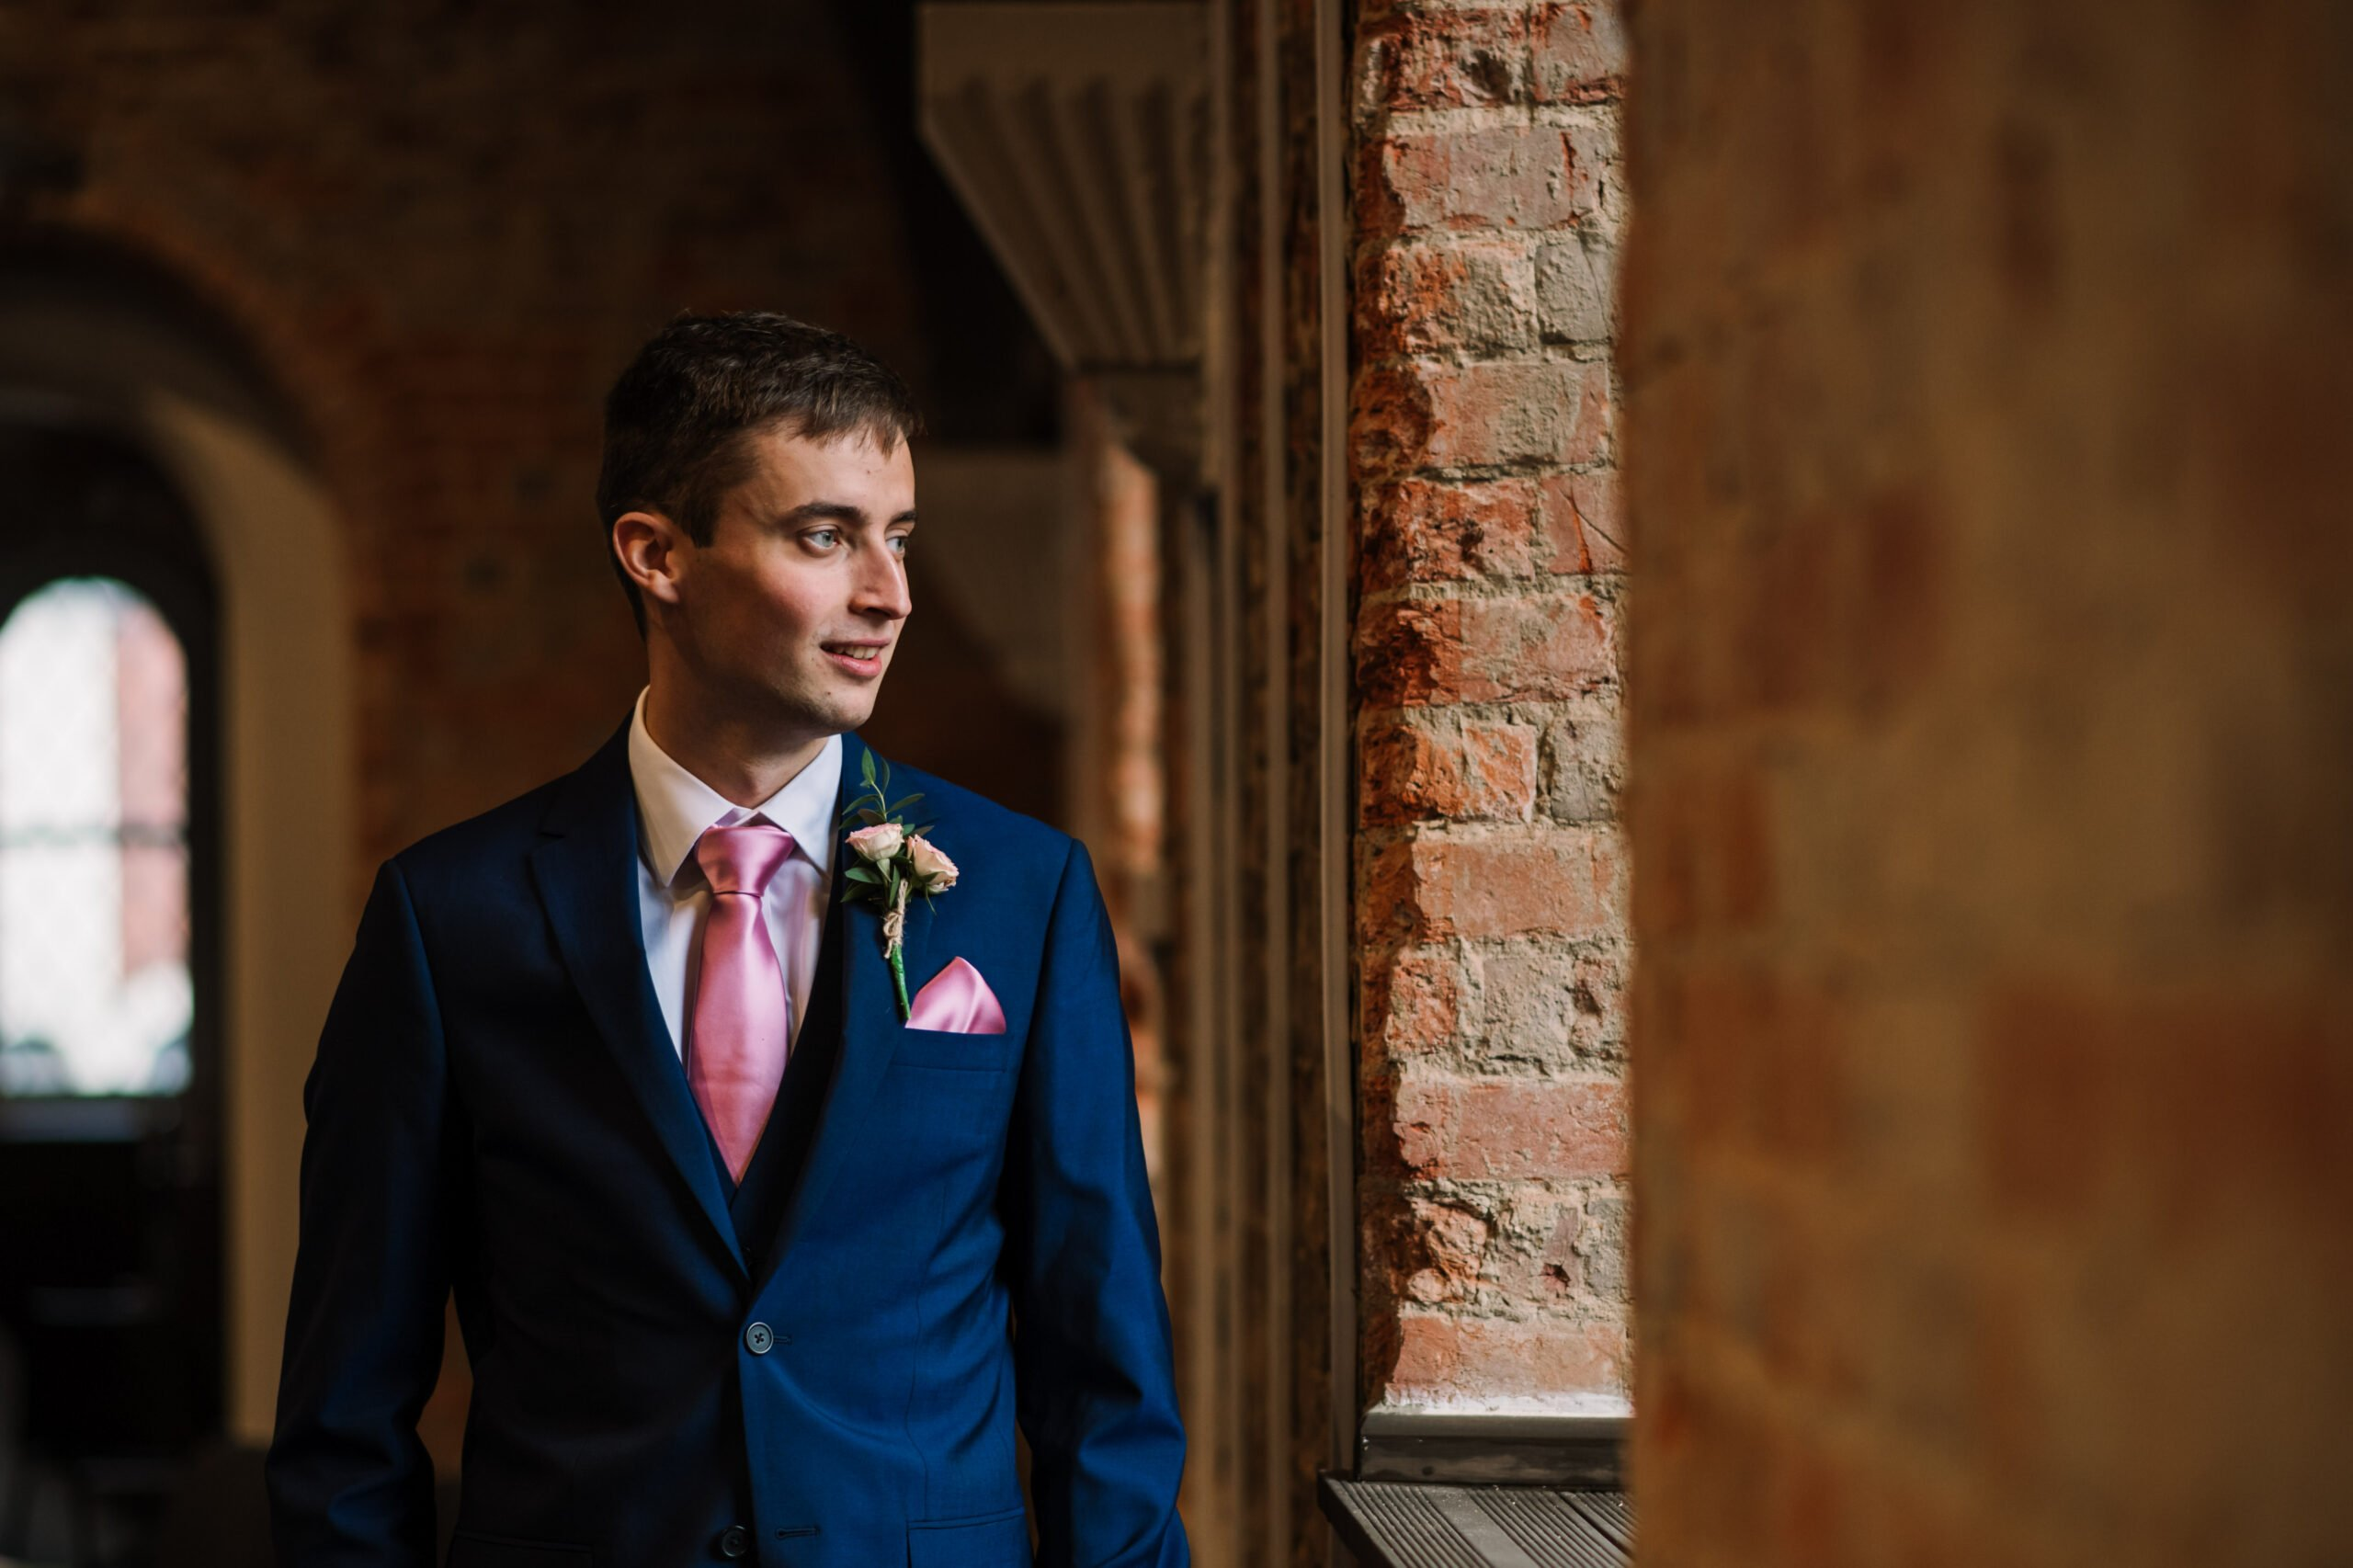 Photograph of Groom at Southampton Wedding